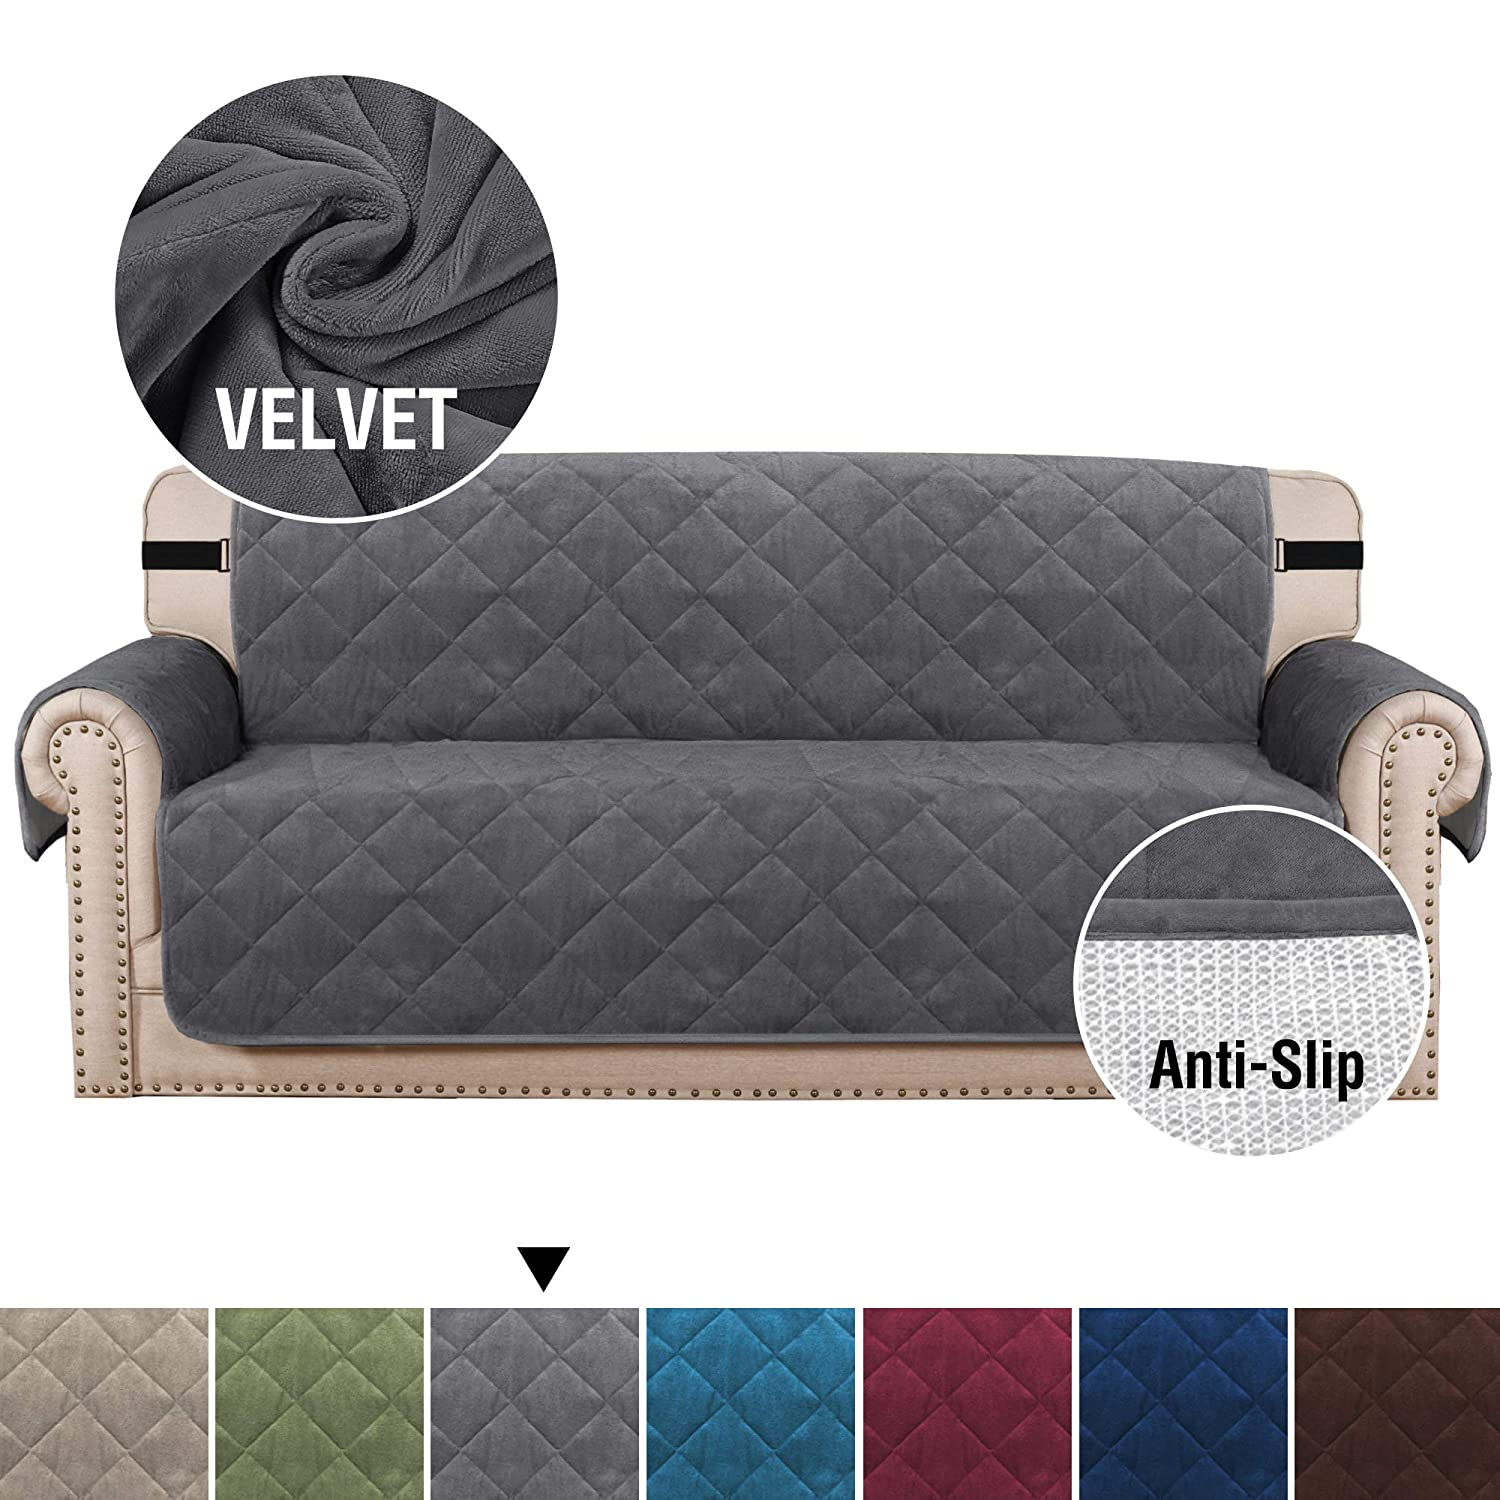 "H.VERSAILTEX Velvet Sofa Covers for 3 Cushion Couch Non-Slip Sofa Slipcover Protector with Side Pockets, Seat Width Up to 70"", 2pcs Straps Couch Cover for Kids, Dogs, Machine Washable (Sofa: Gray)"